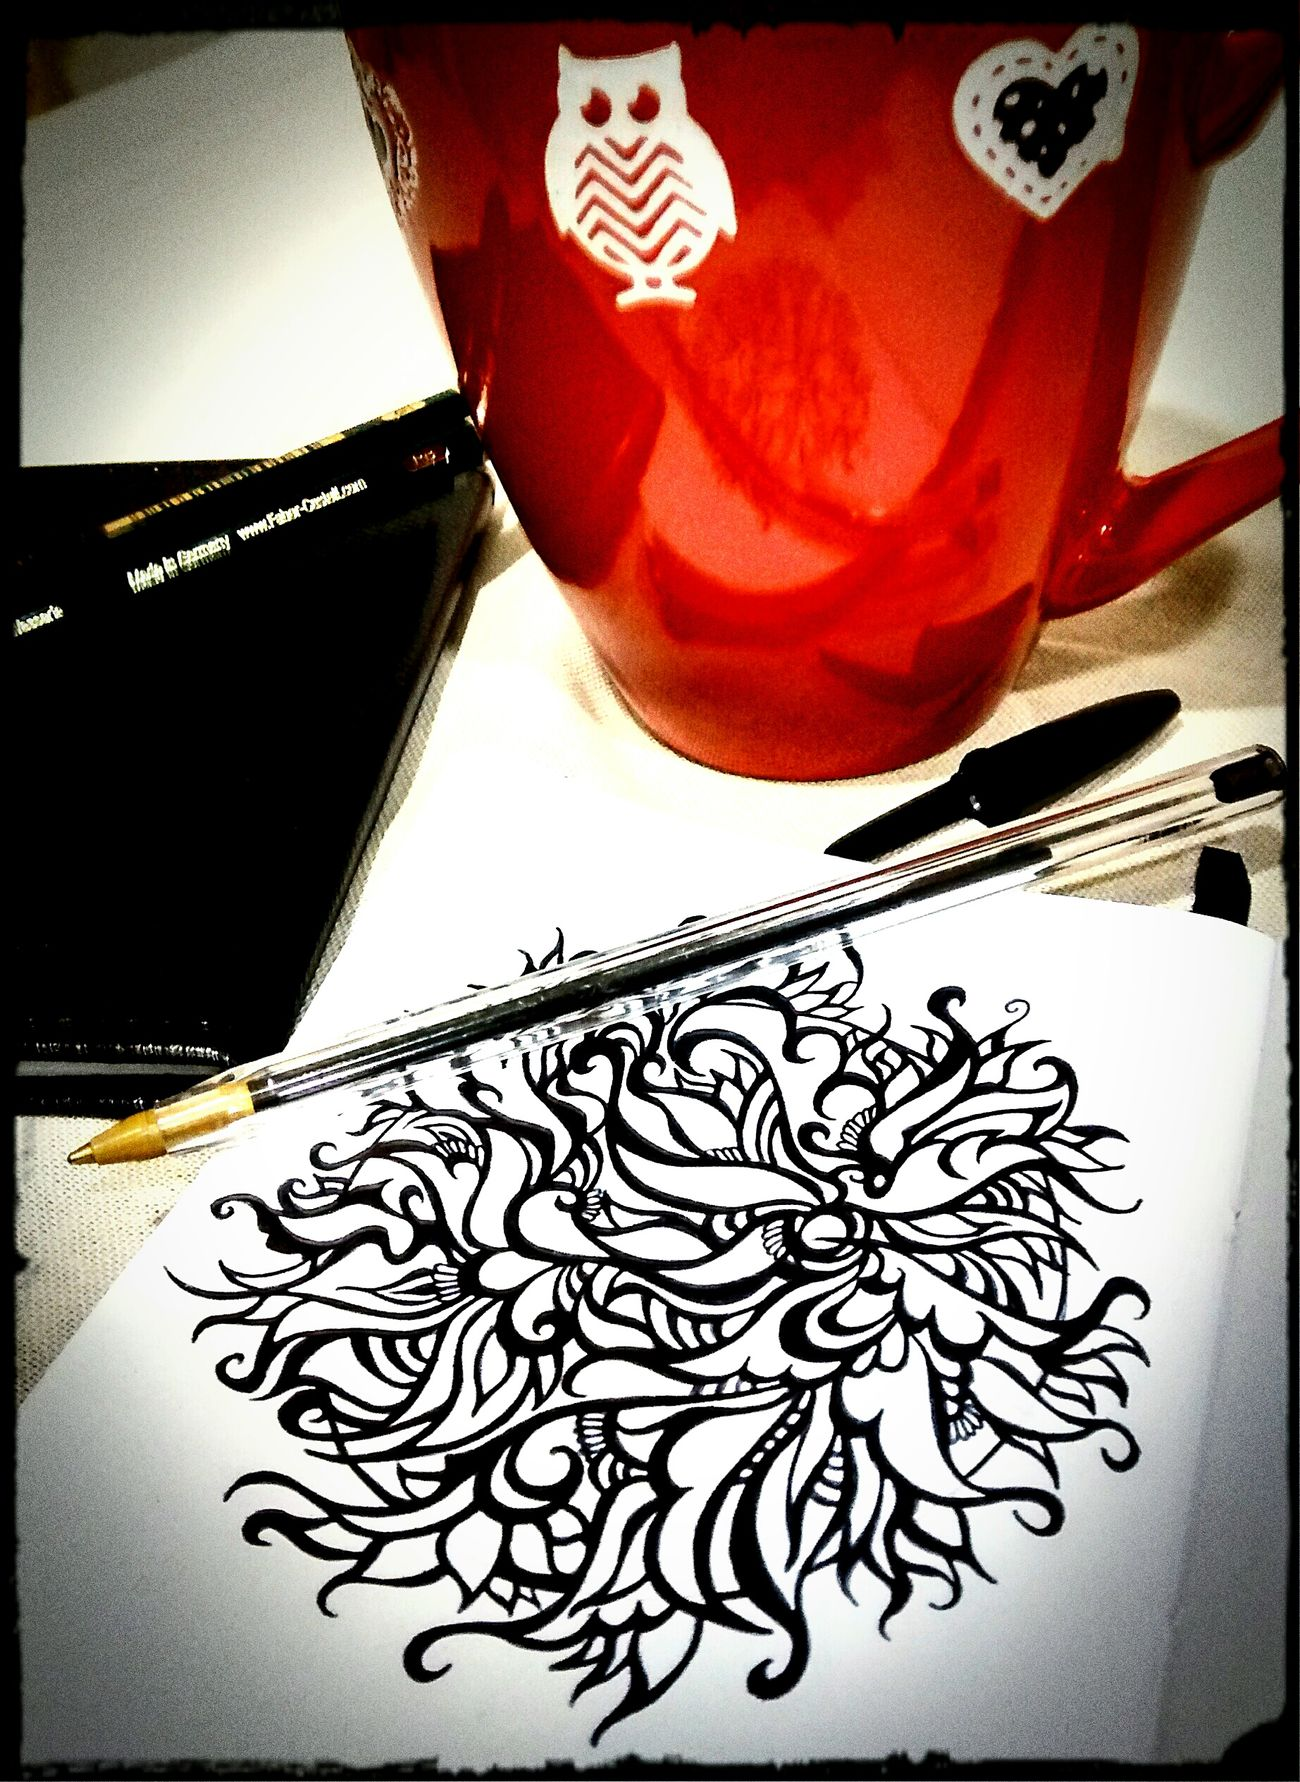 RelaxTime Relaxing Mydraw My Creativity Quiet Moments Details From My Point Of View Seeking Inspiration